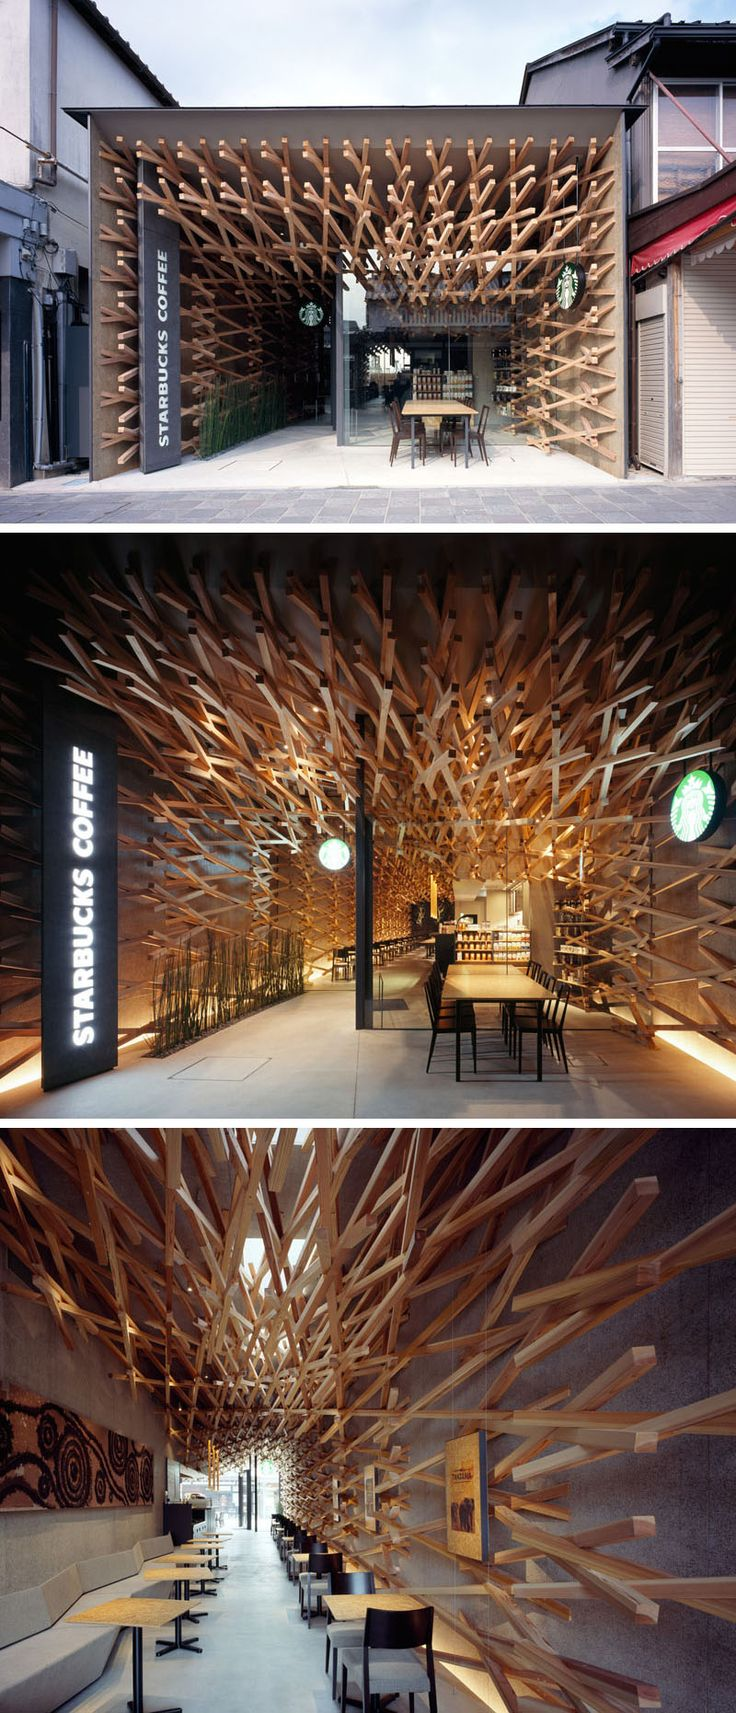 11 Starbucks Coffee Shops From Around The World // In an attempt to connect this Starbucks location to it's surroundings, interlocking wooden beams lead people from the streets deep into the shop. The wooden beams were also used in a nod to sustainability and recycling as they can easily be dismantled and used again somewhere else.